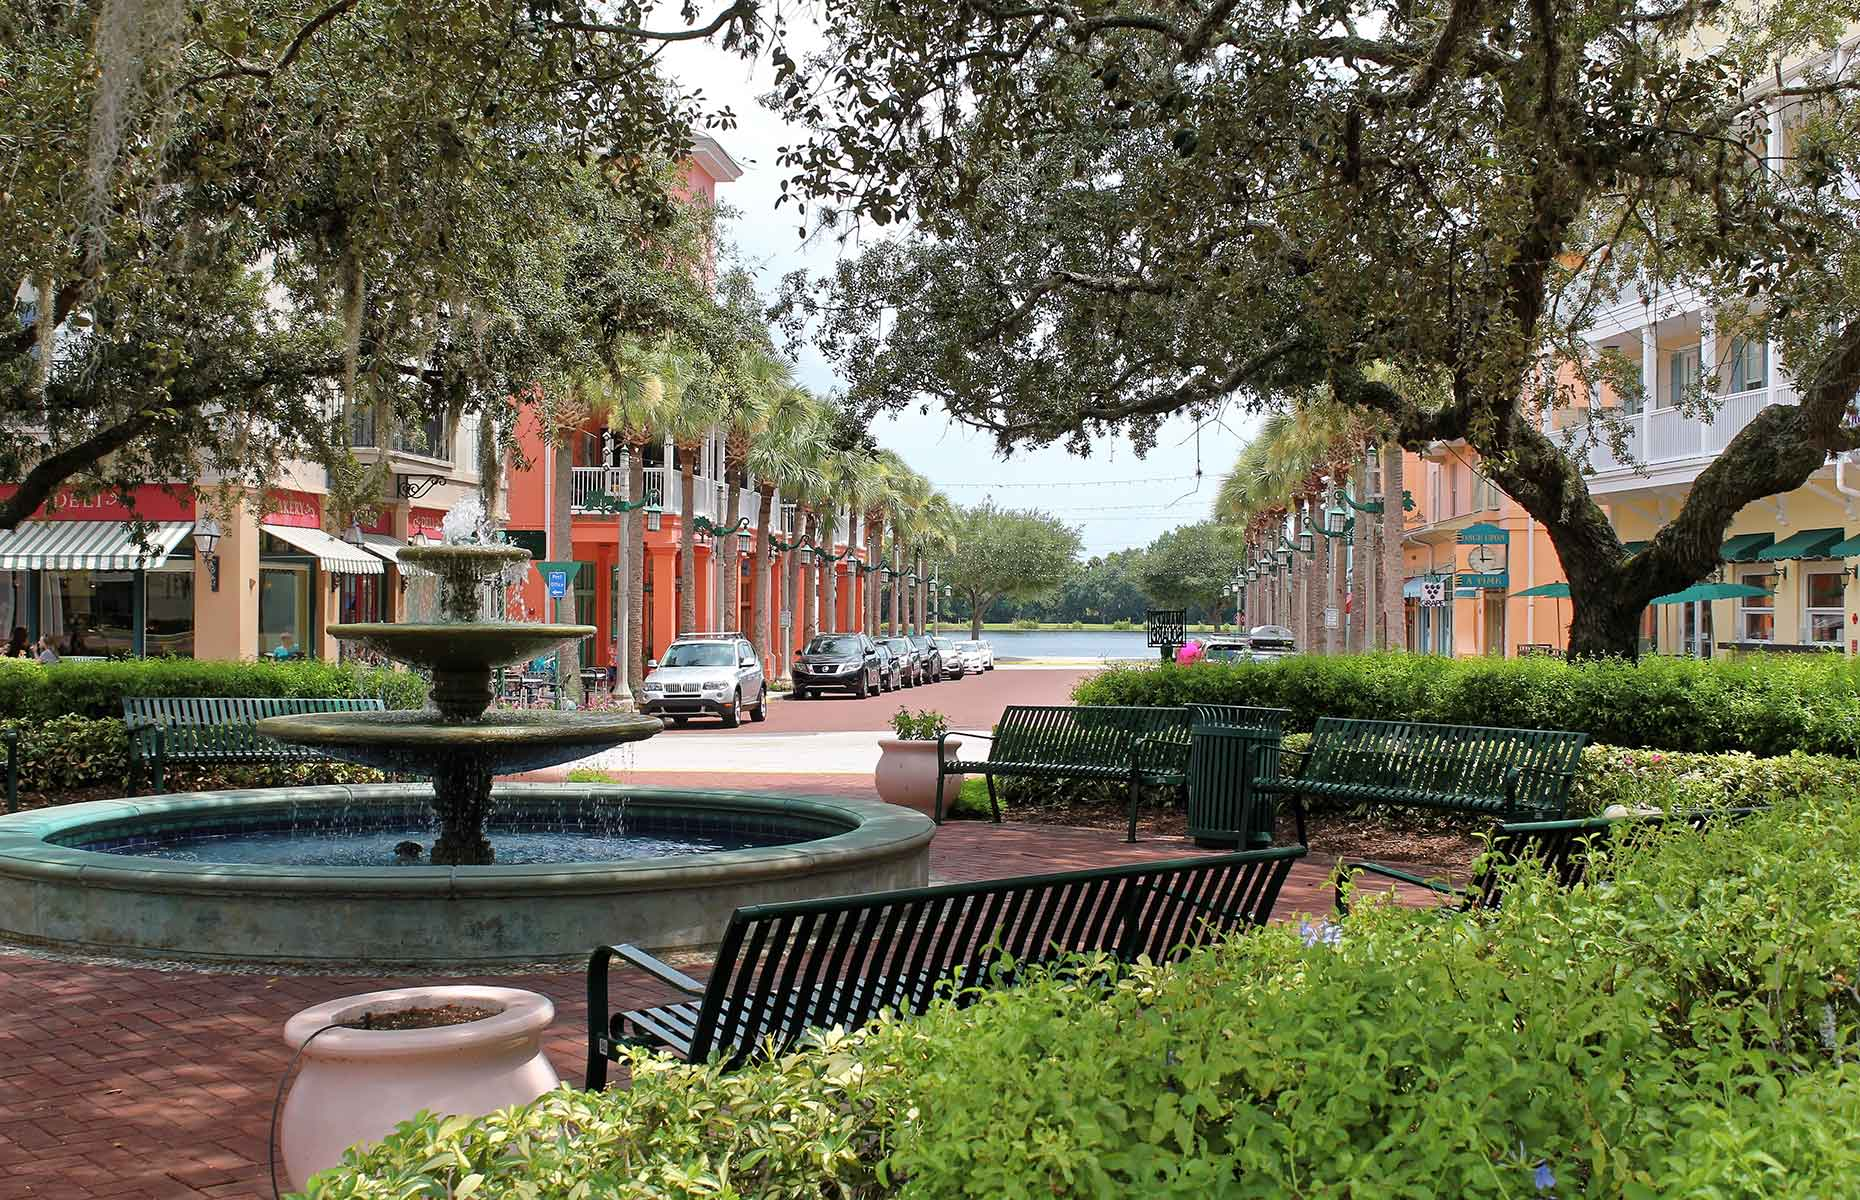 Celebration City, Florida (Image: Jerome LABOUYRIE/Shutterstock)